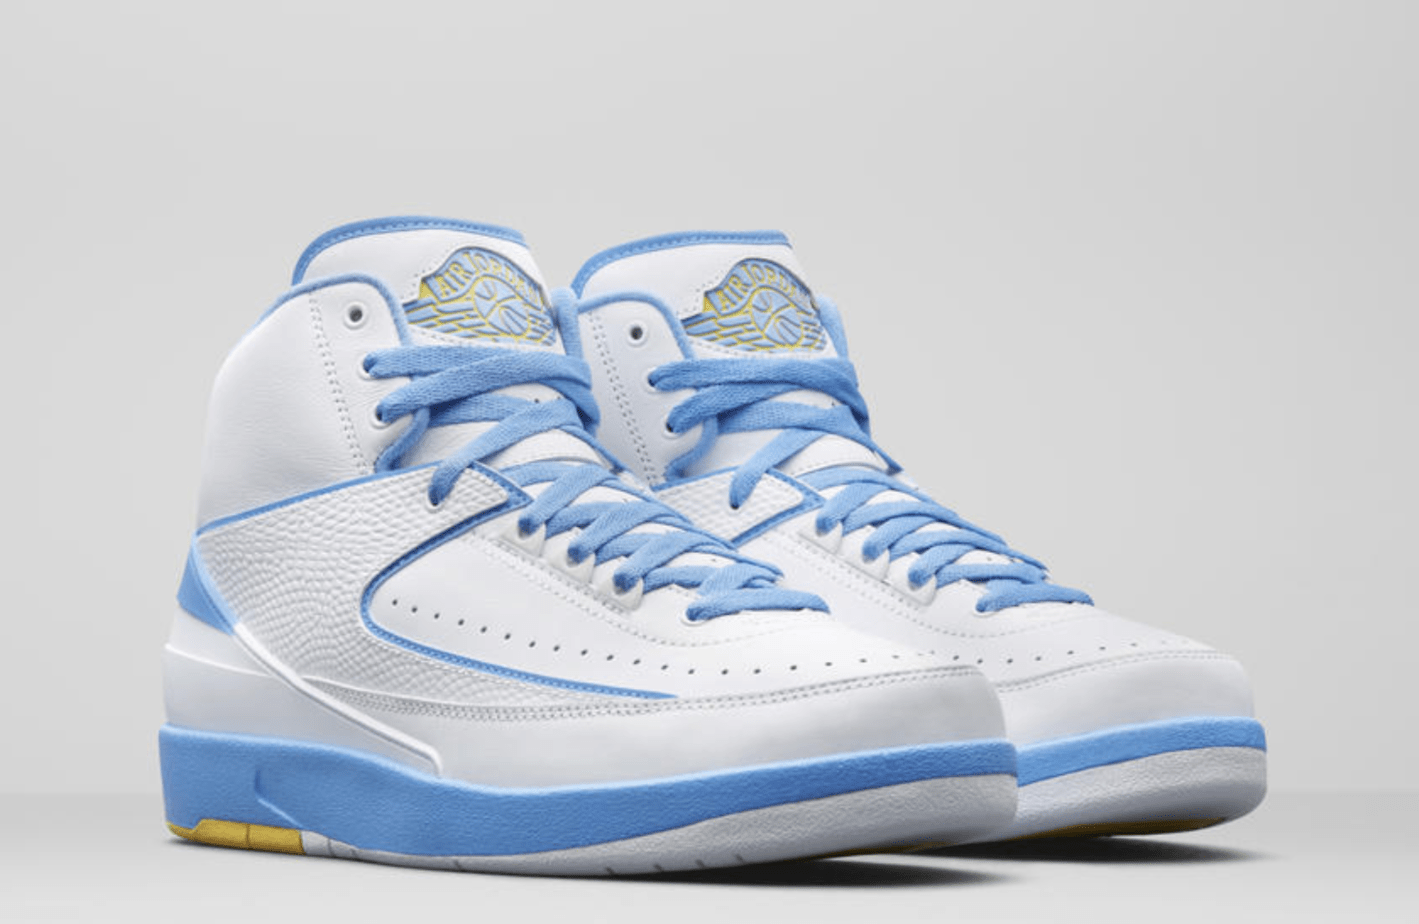 984153e8890d0c Carmelo Anthony s Famous Air Jordan 2 PE Returns This June